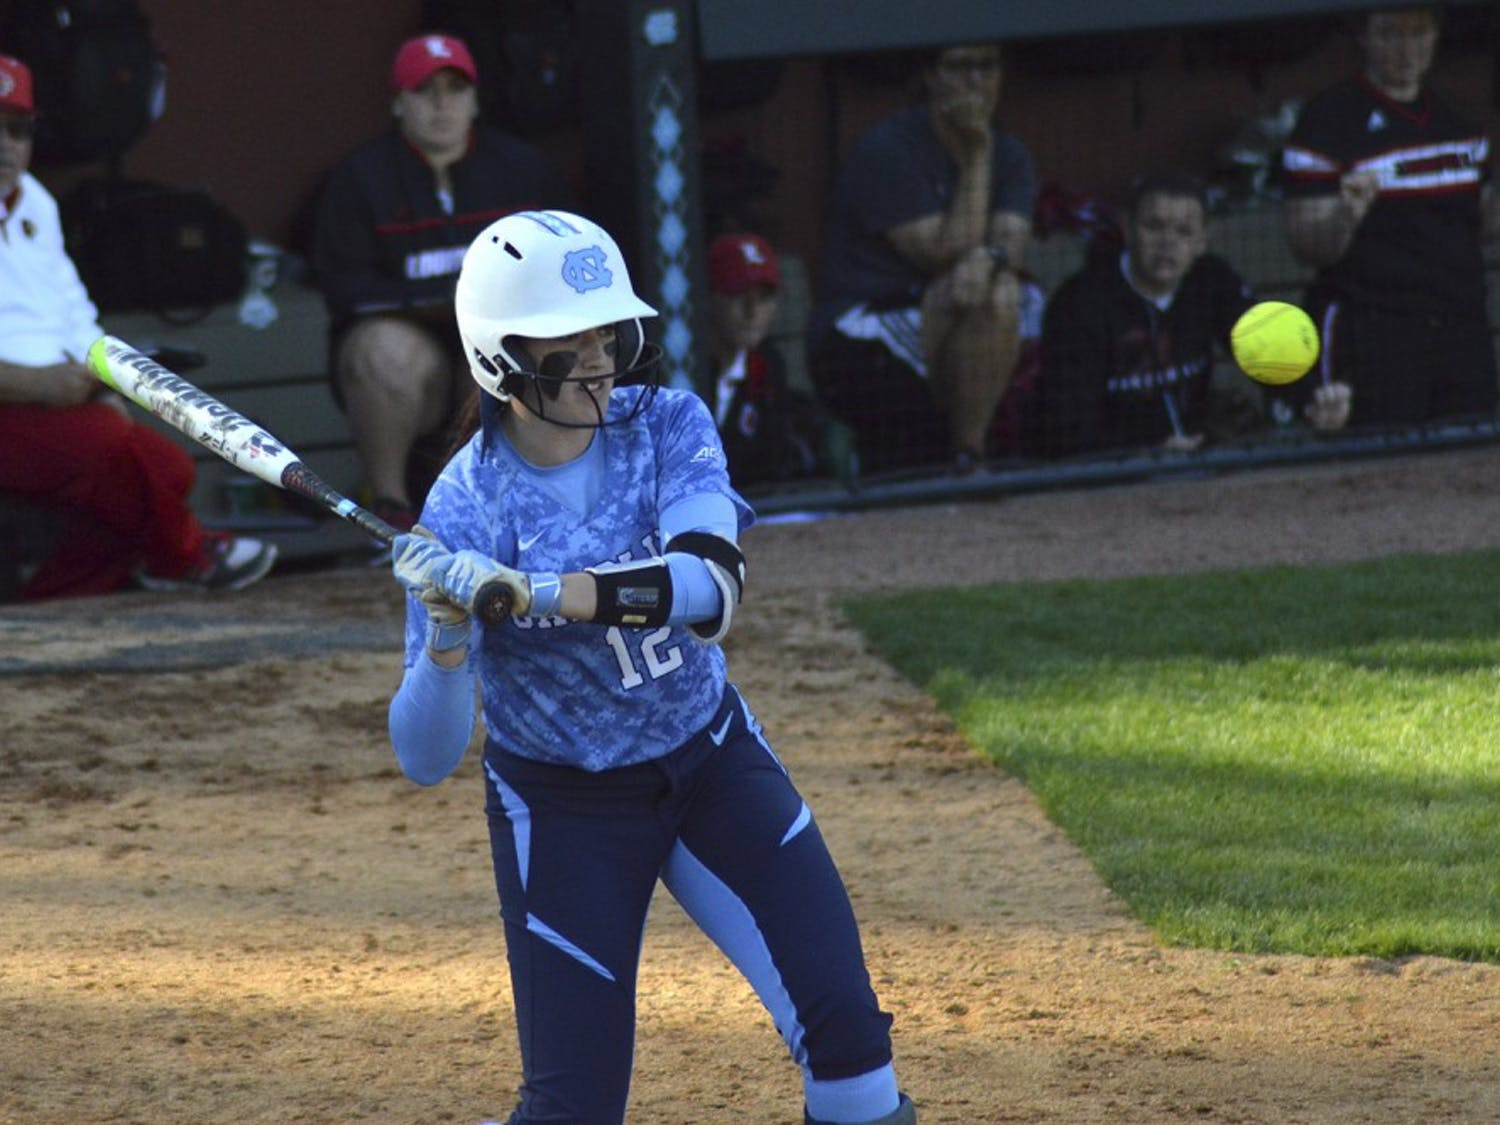 Shortstop Kristen Brown swings at the ball during UNC's game against Louisville on Saturday.